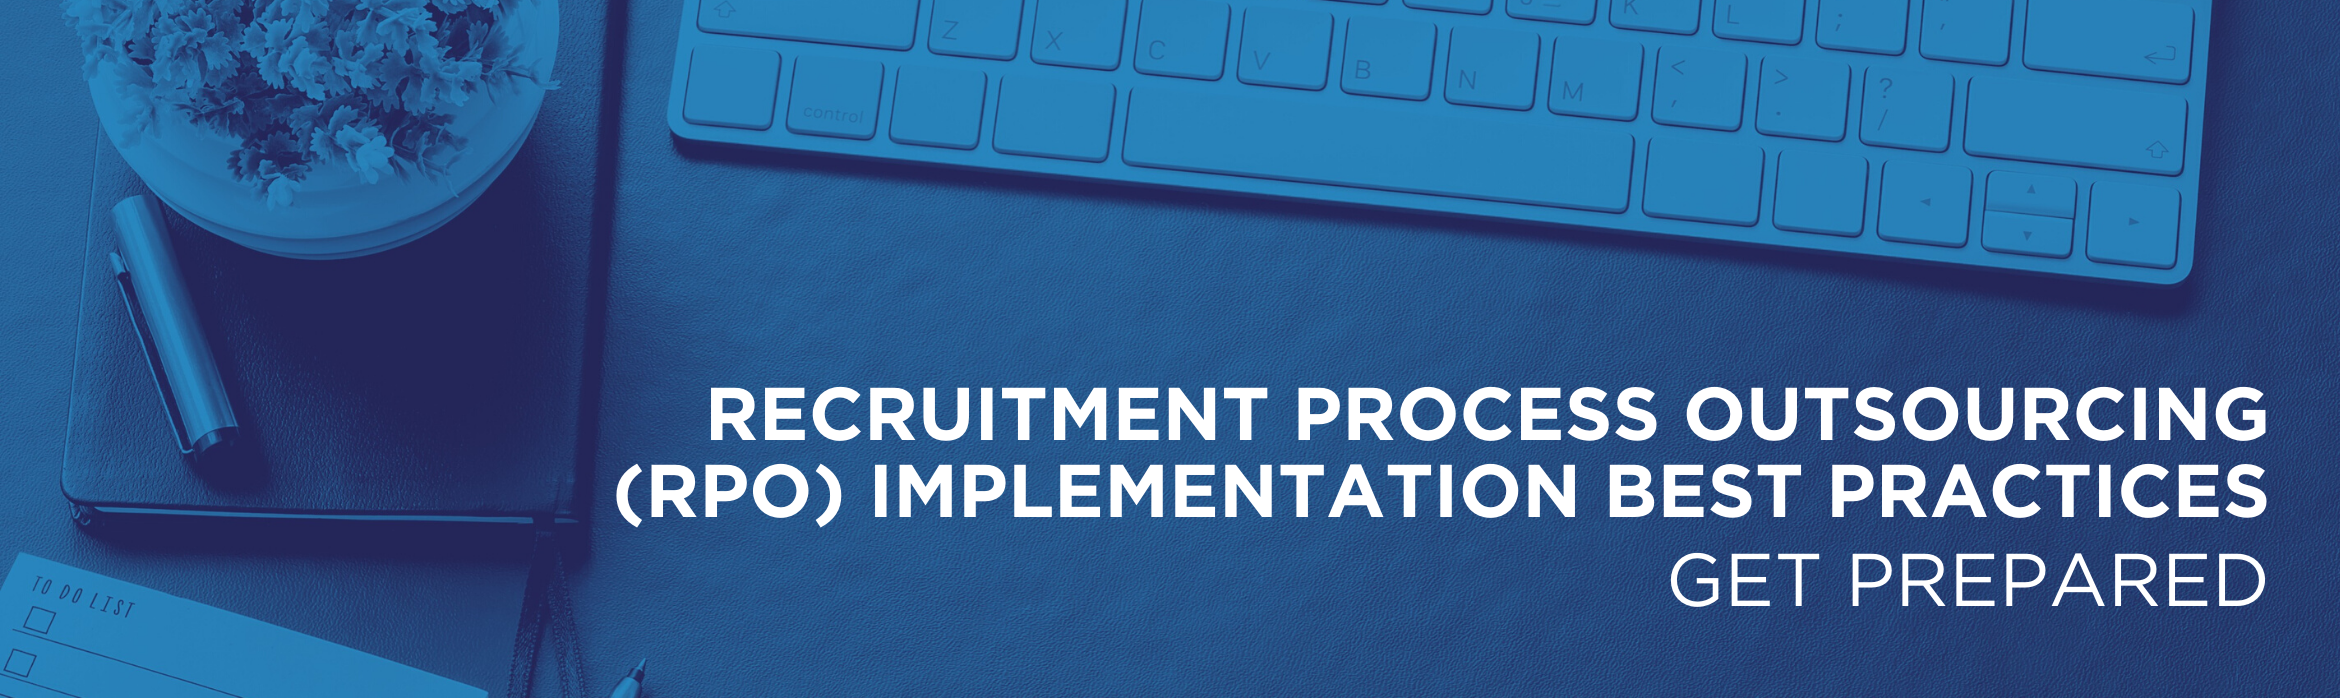 RPO Implementation BP - Get Prepared